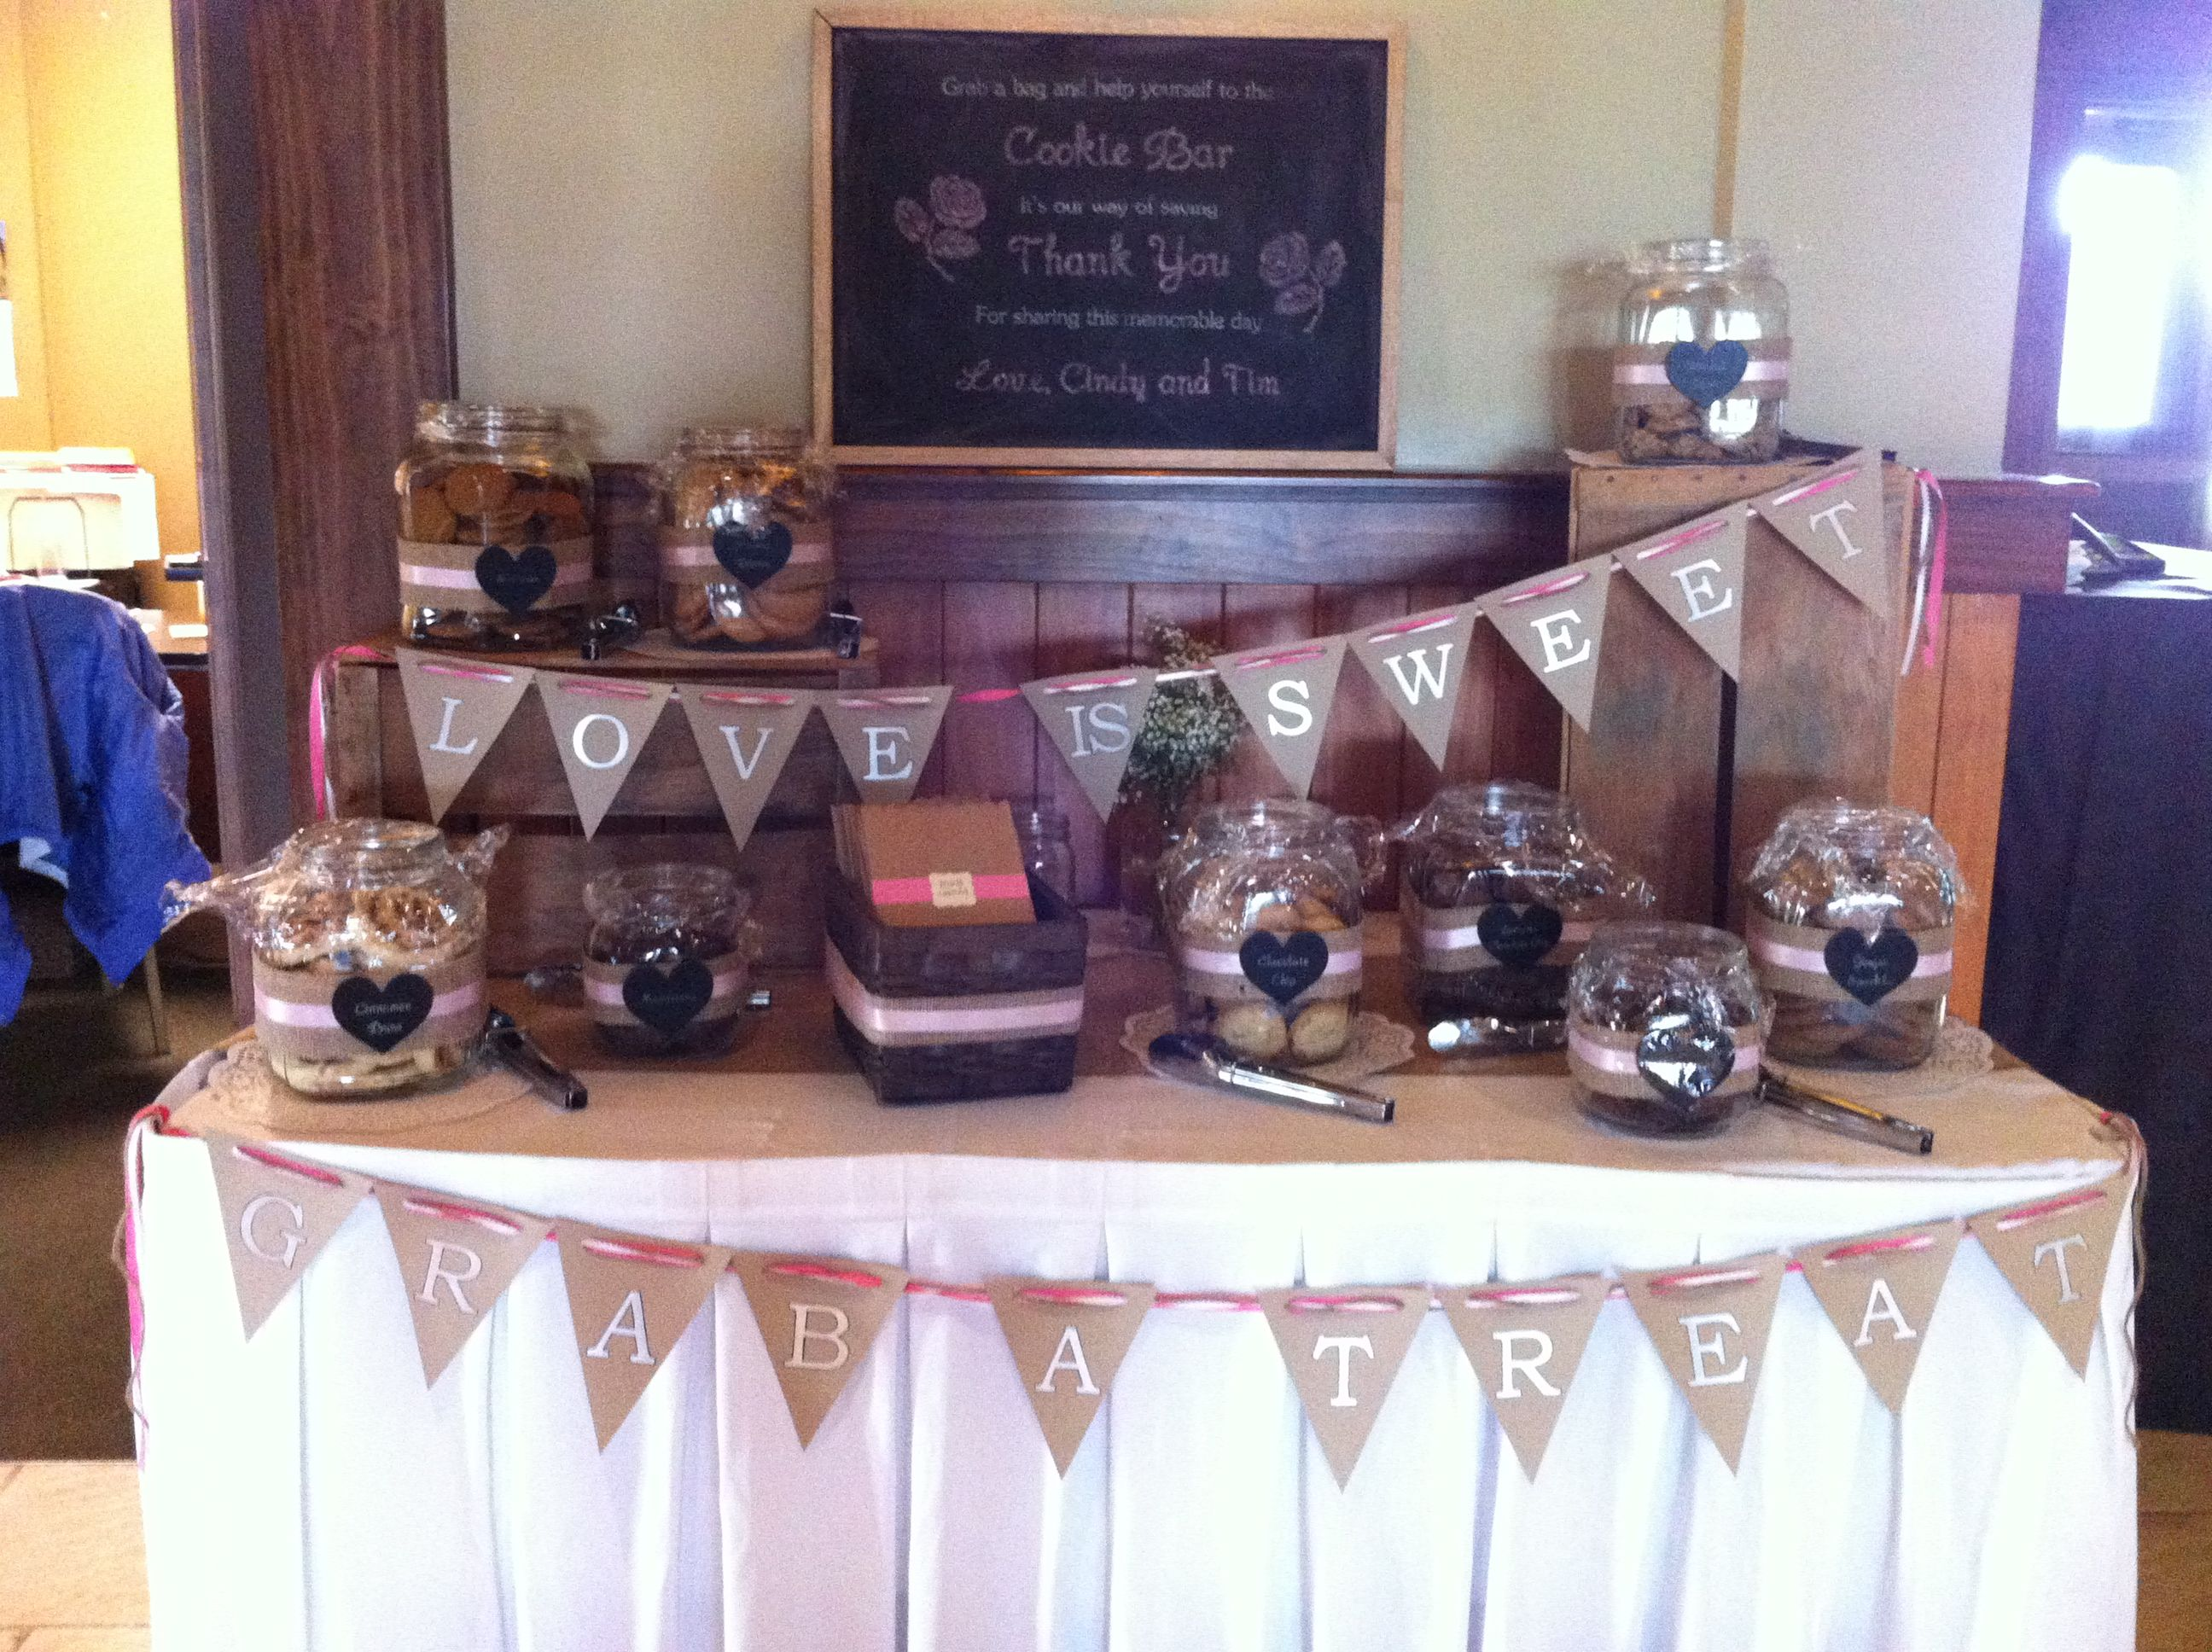 Cookie bar set up for guests at a reception.